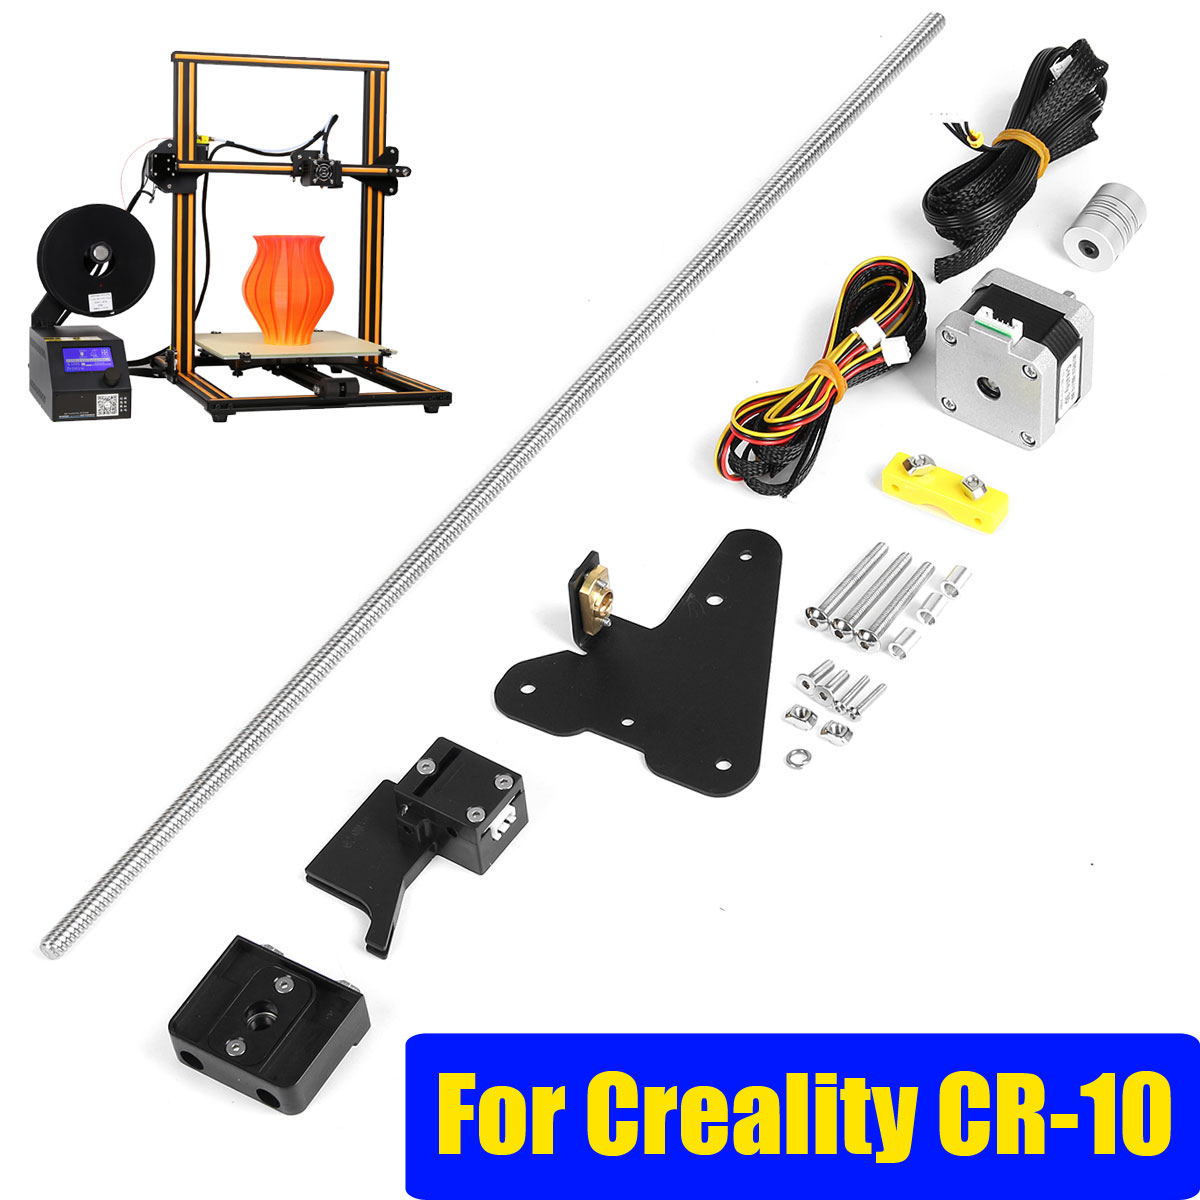 S SKYEE 3D Printer Dual Z axis Upgrade Kit + Filament Sensor Kits For Creality CR 10 3D Printer Parts-in 3D Printer Parts & Accessories from Computer & Office    1